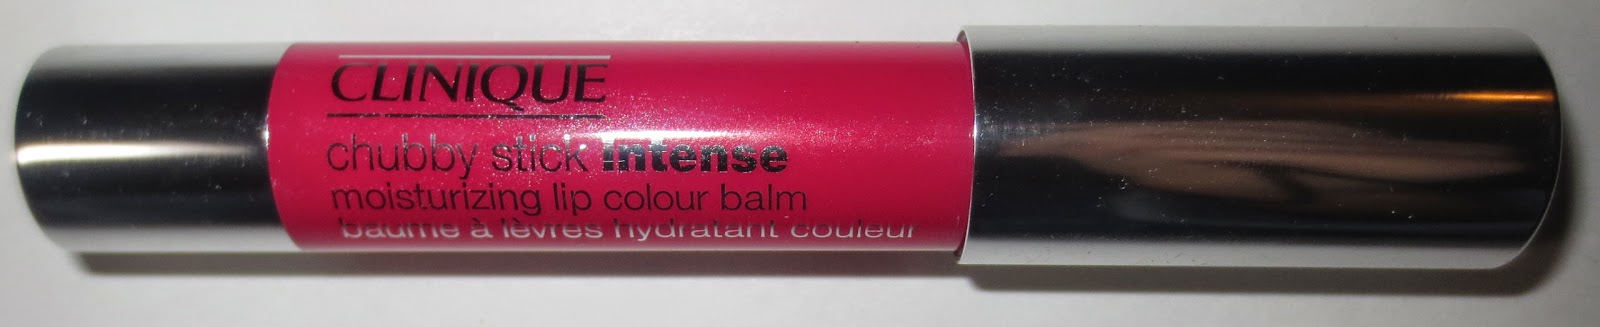 Clinique Chubby Stick Intense Moisturizing Lip Colour Balm - Plushest Punch